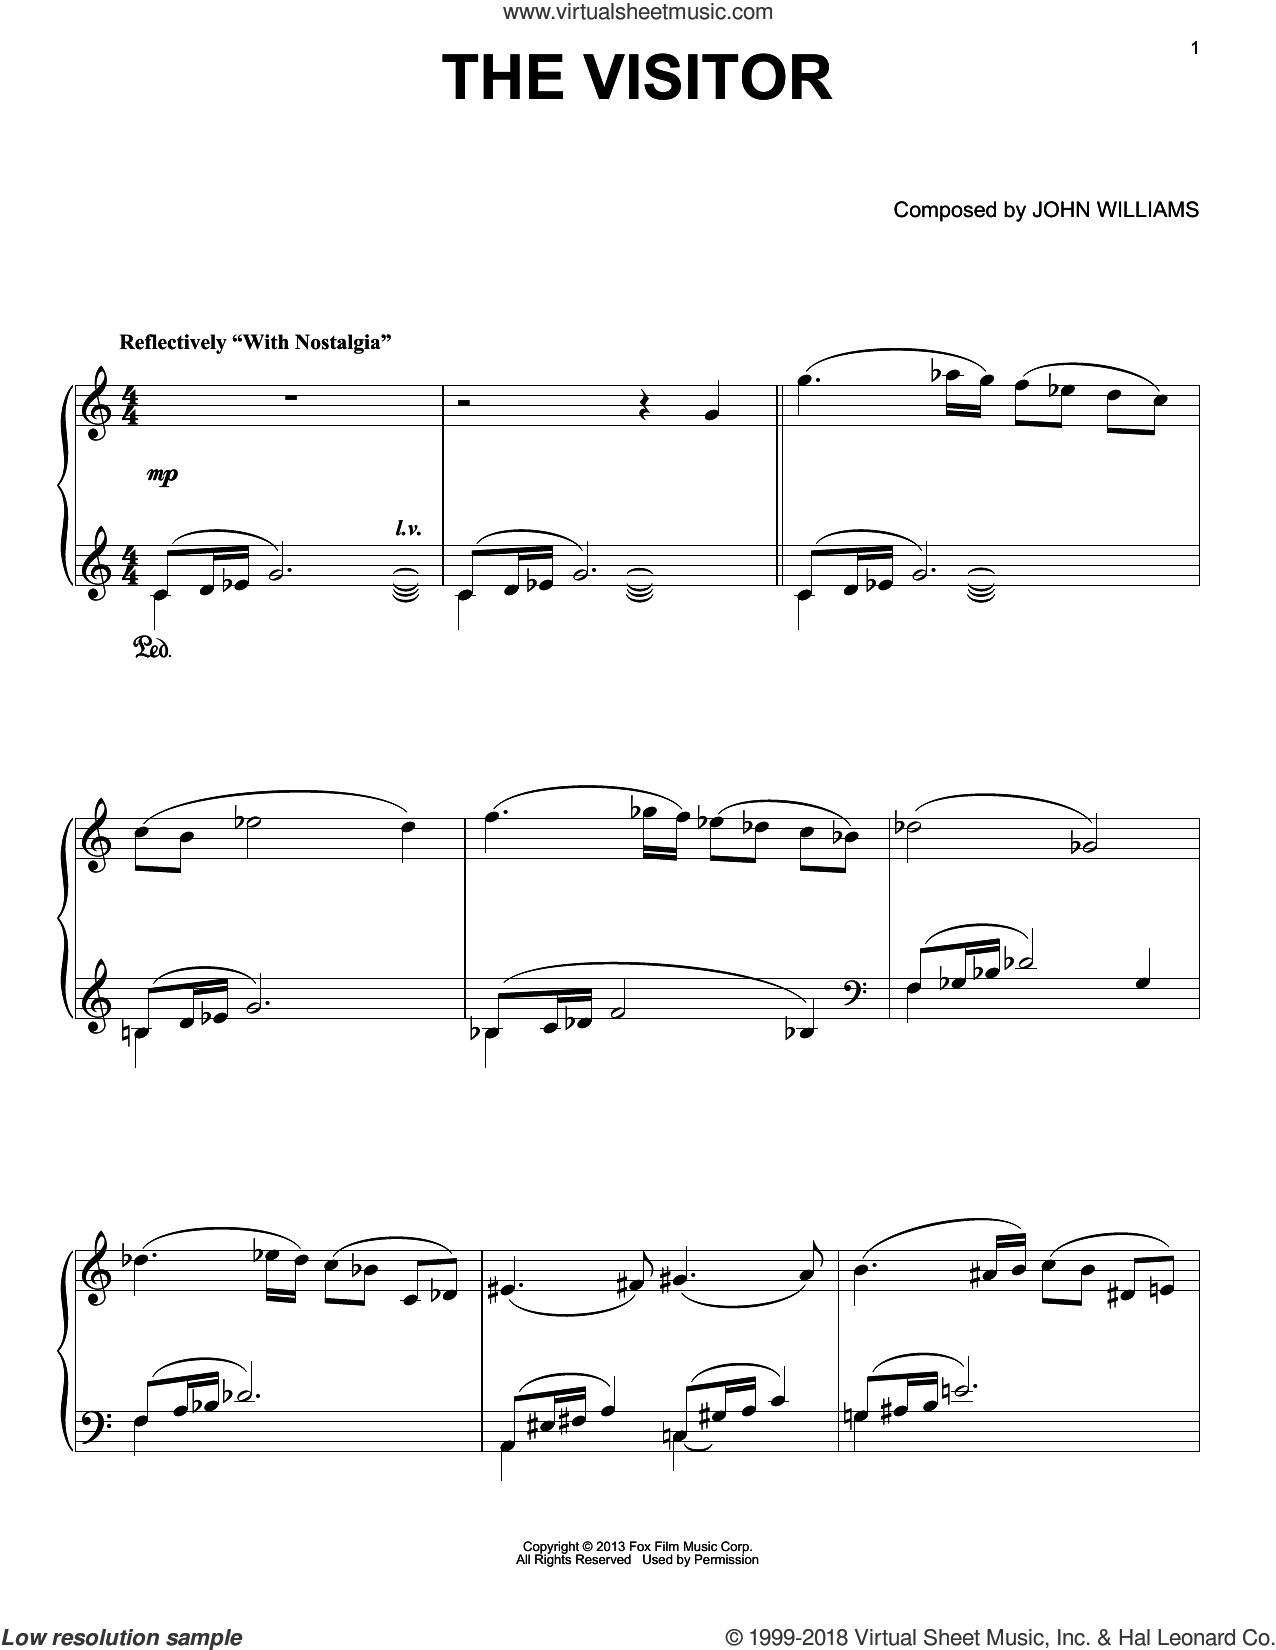 The Visitor sheet music for piano solo by John Williams, intermediate